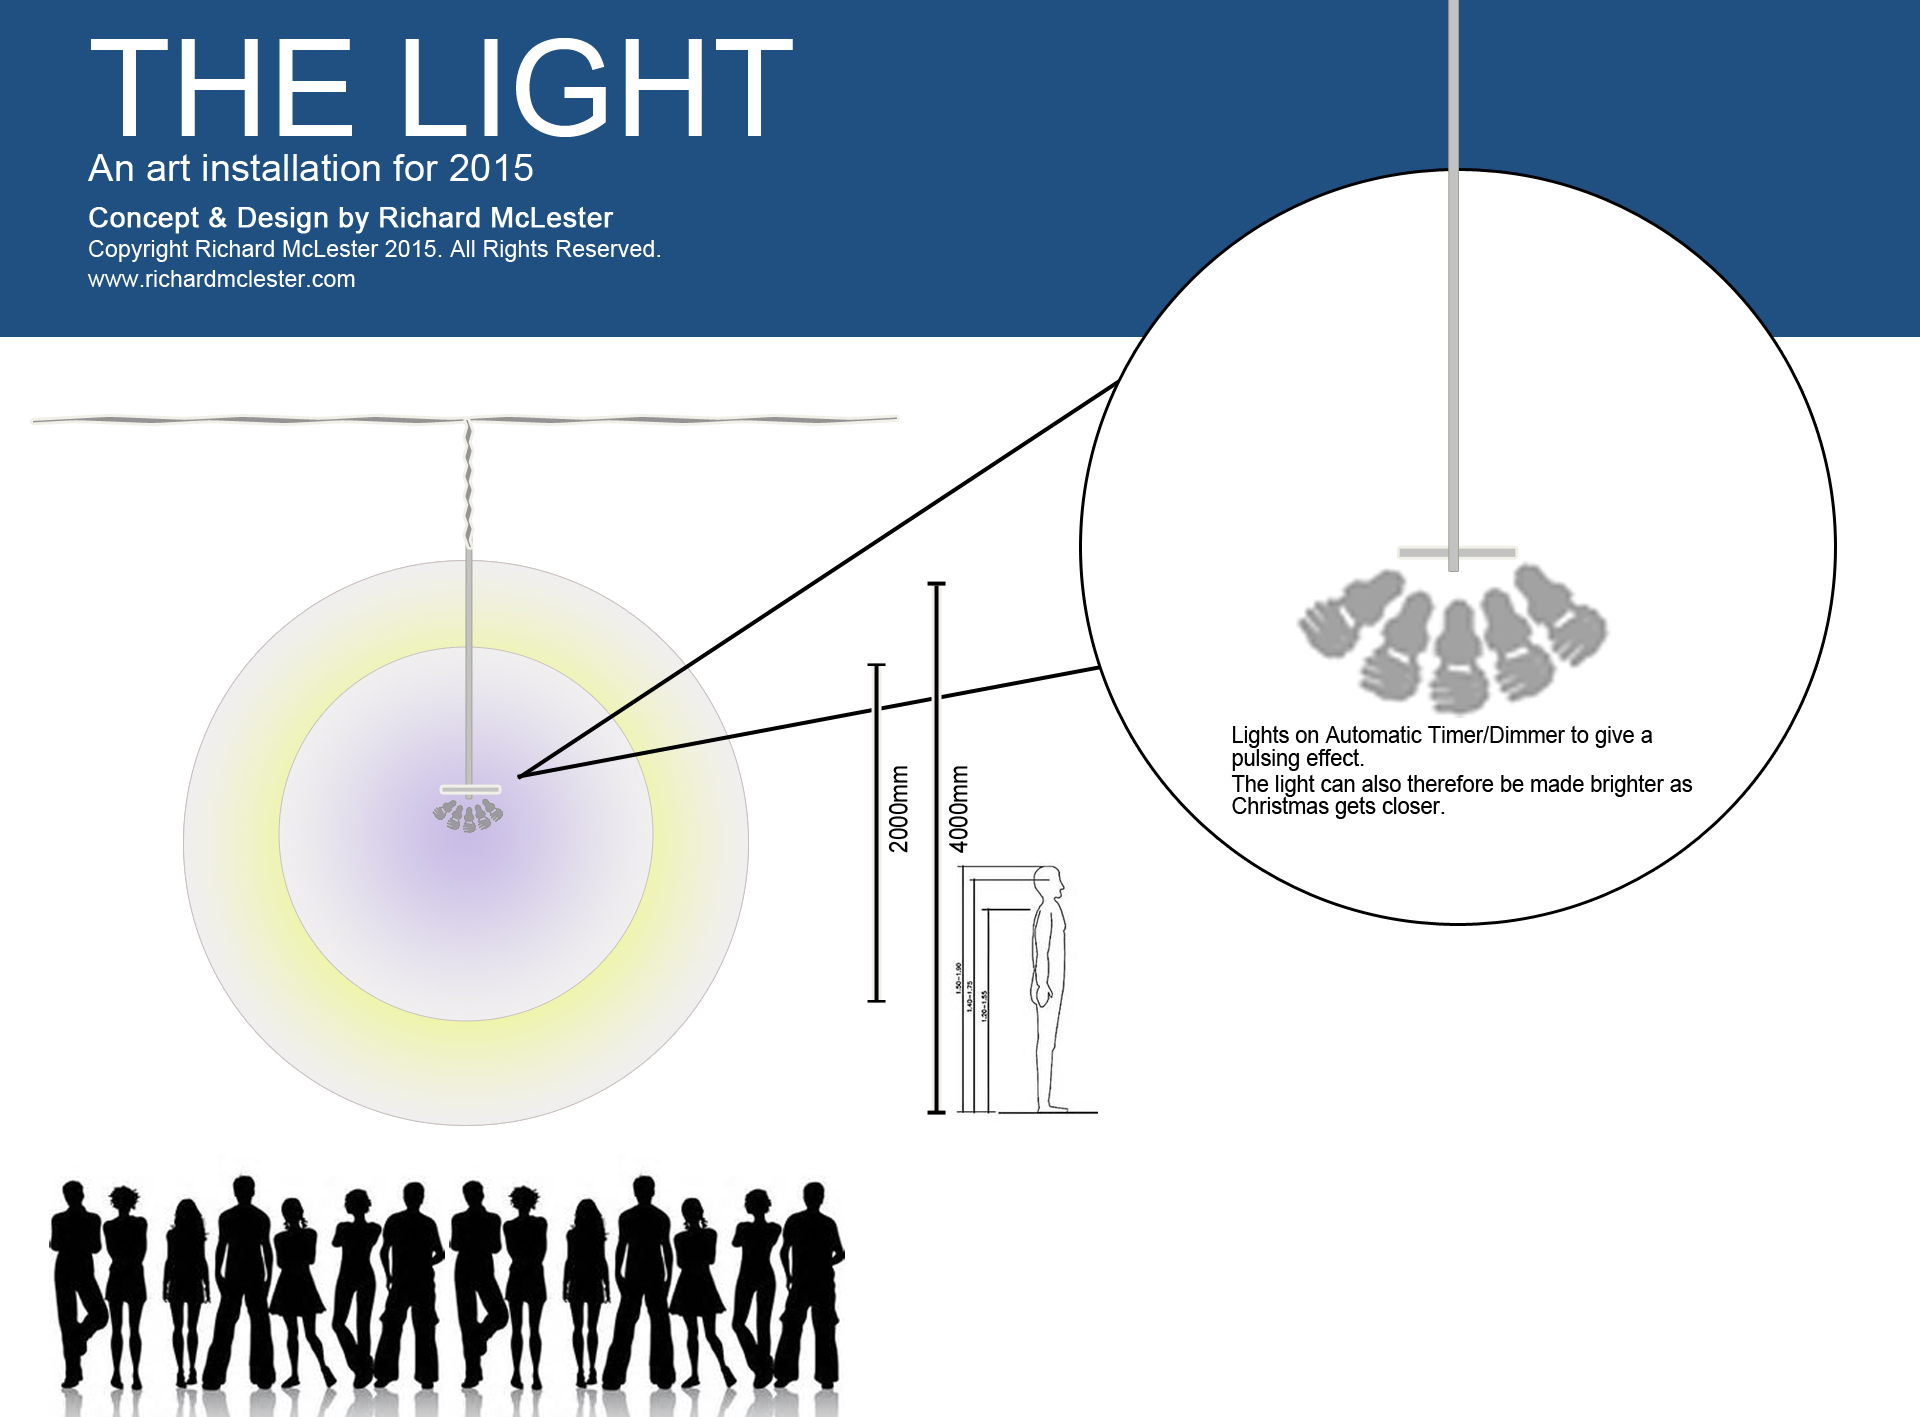 THE LIGHT _ Design